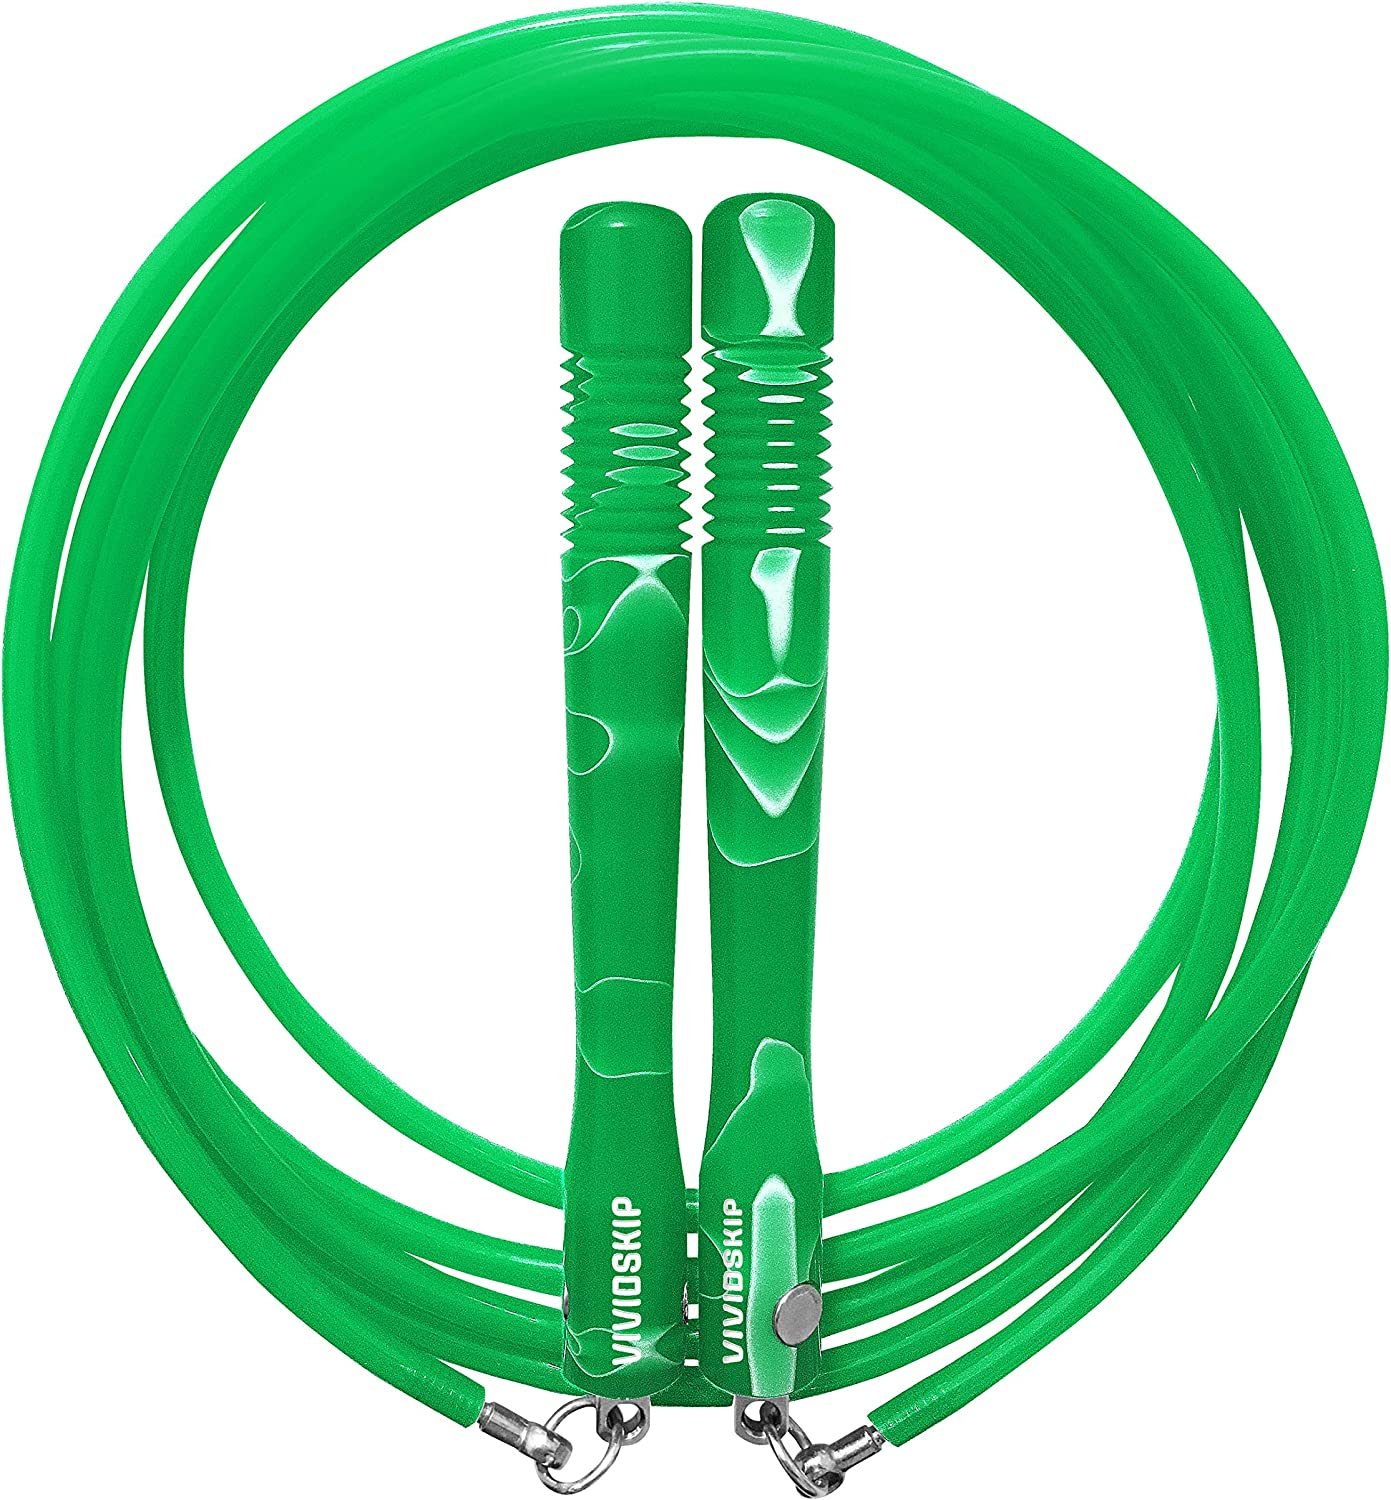 VividSkip Jump Rope - 1 2 Outlet SALE HIIT Boxing LB Free shipping anywhere in the nation Contoured Cardio